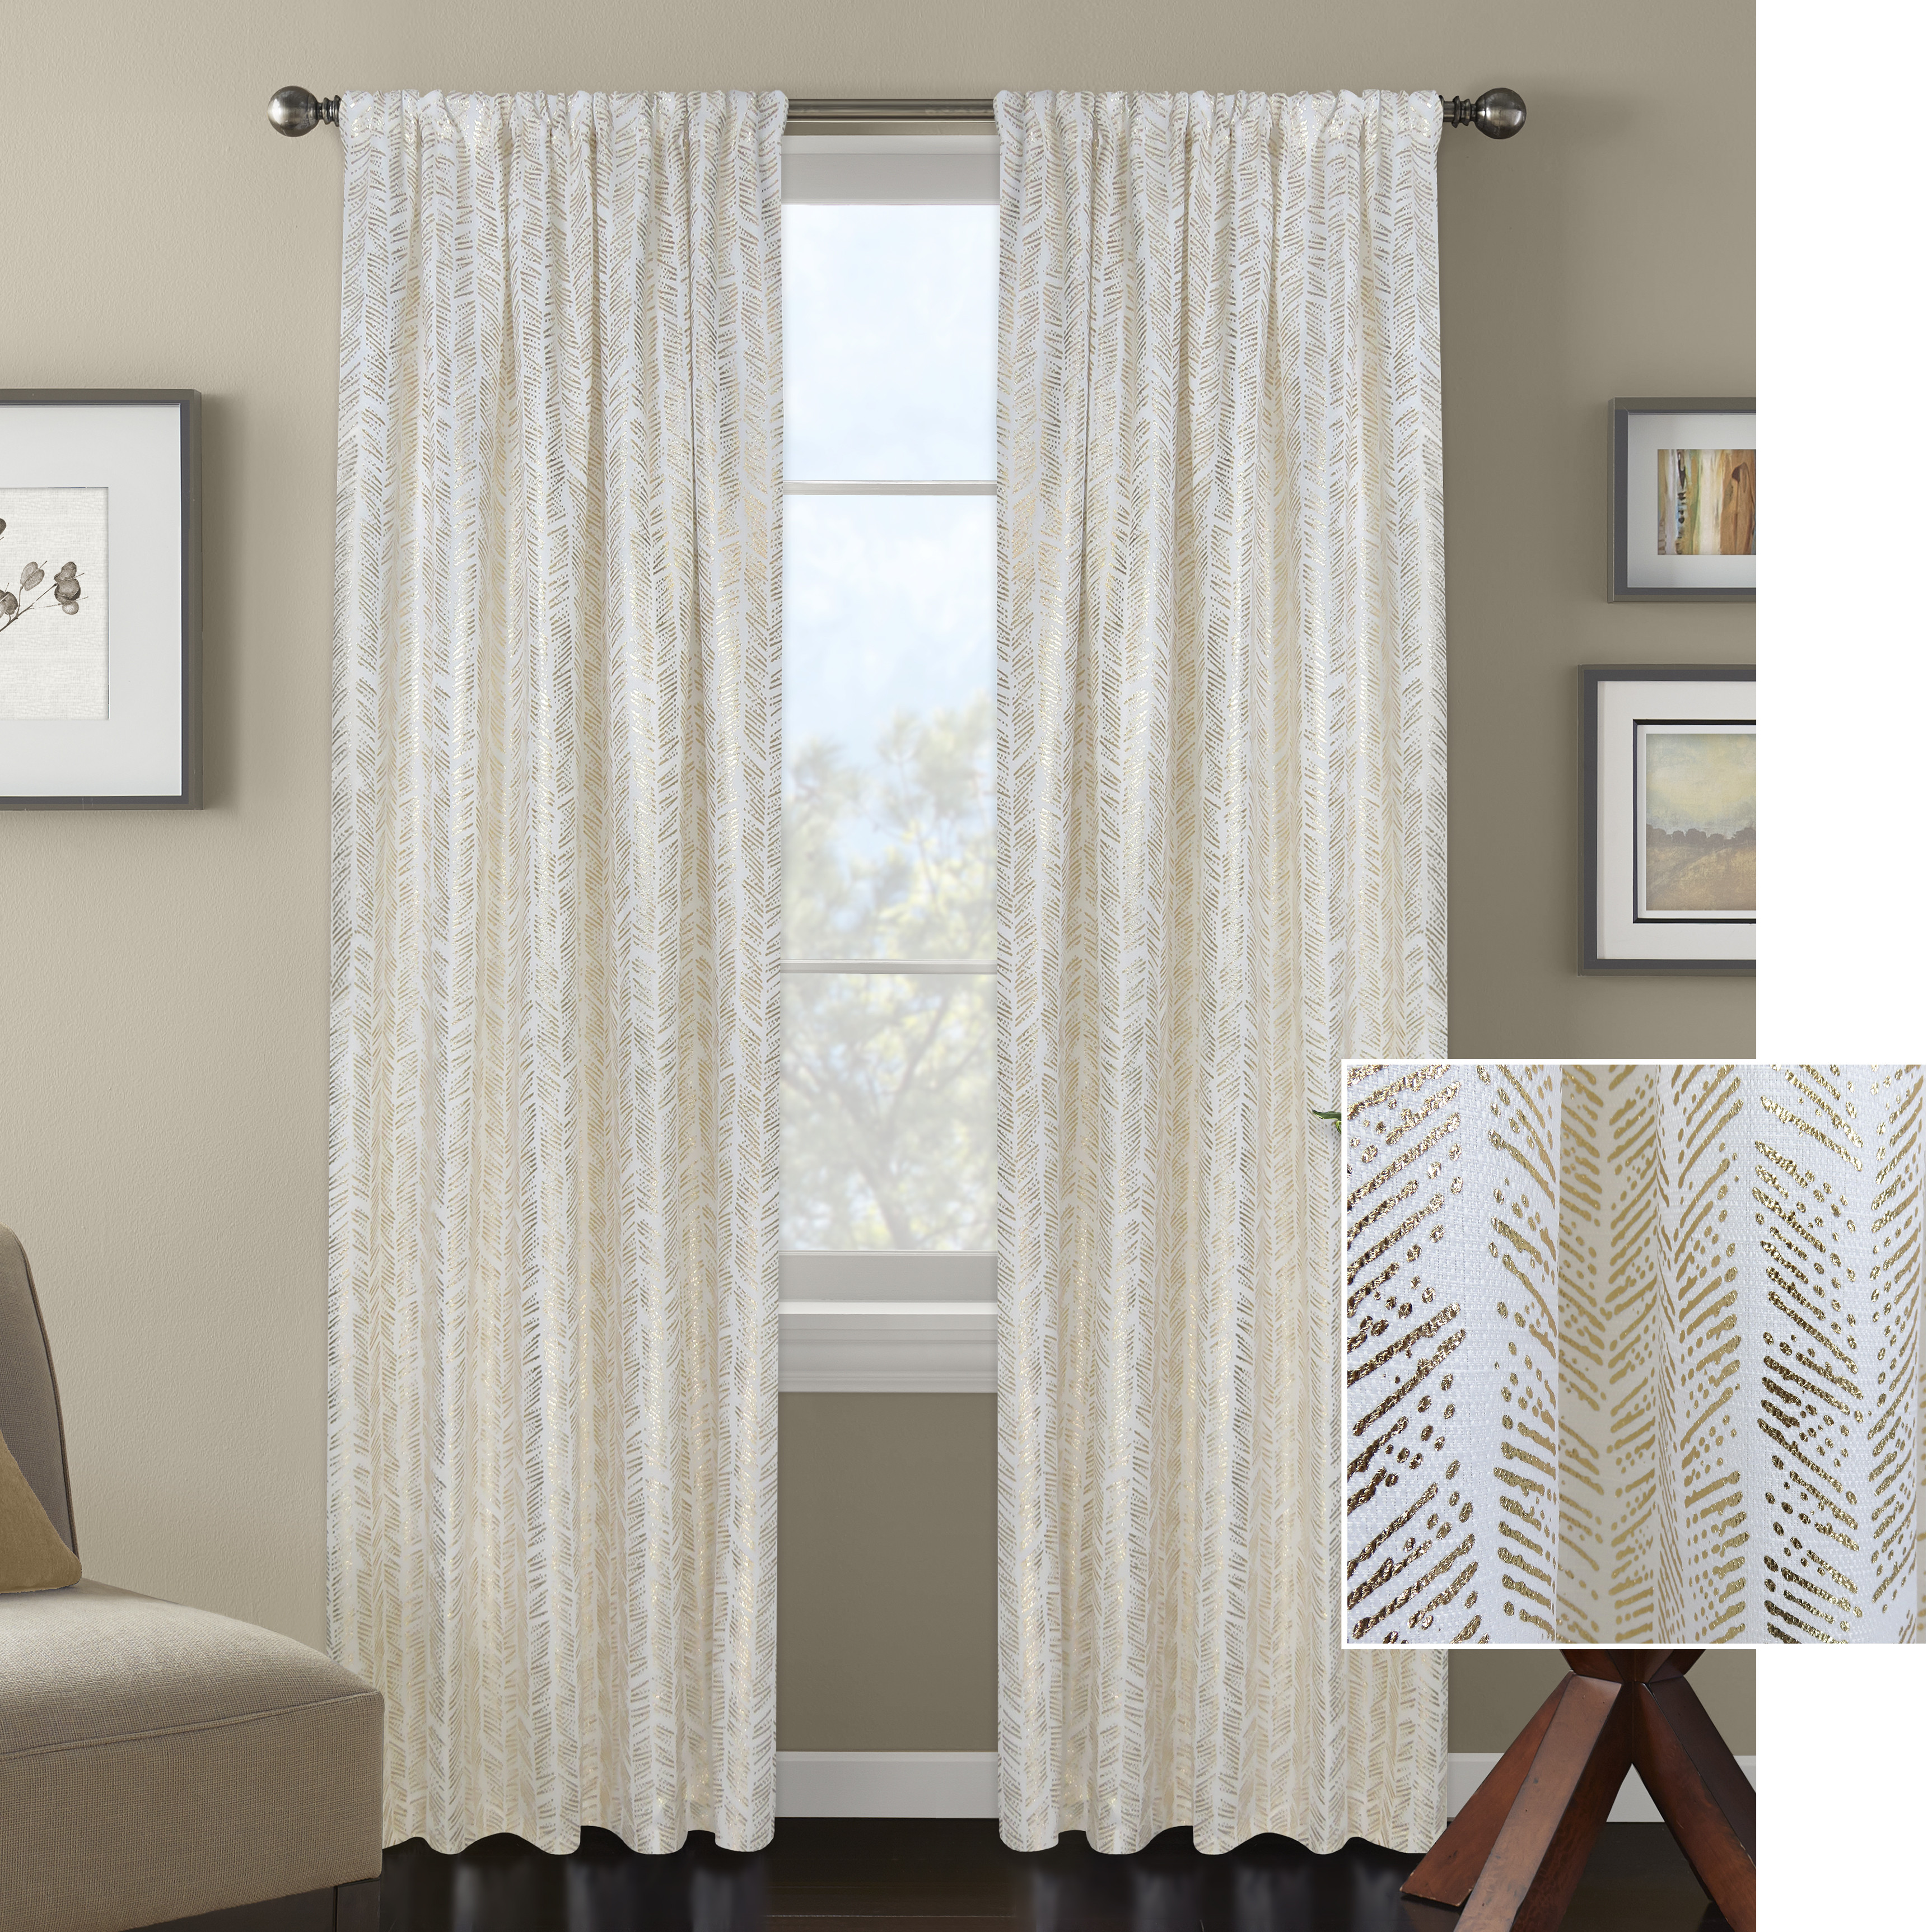 Better Homes and Gardens Distressed Herringbone Metallic Gold or Silver Window Curtain Panel